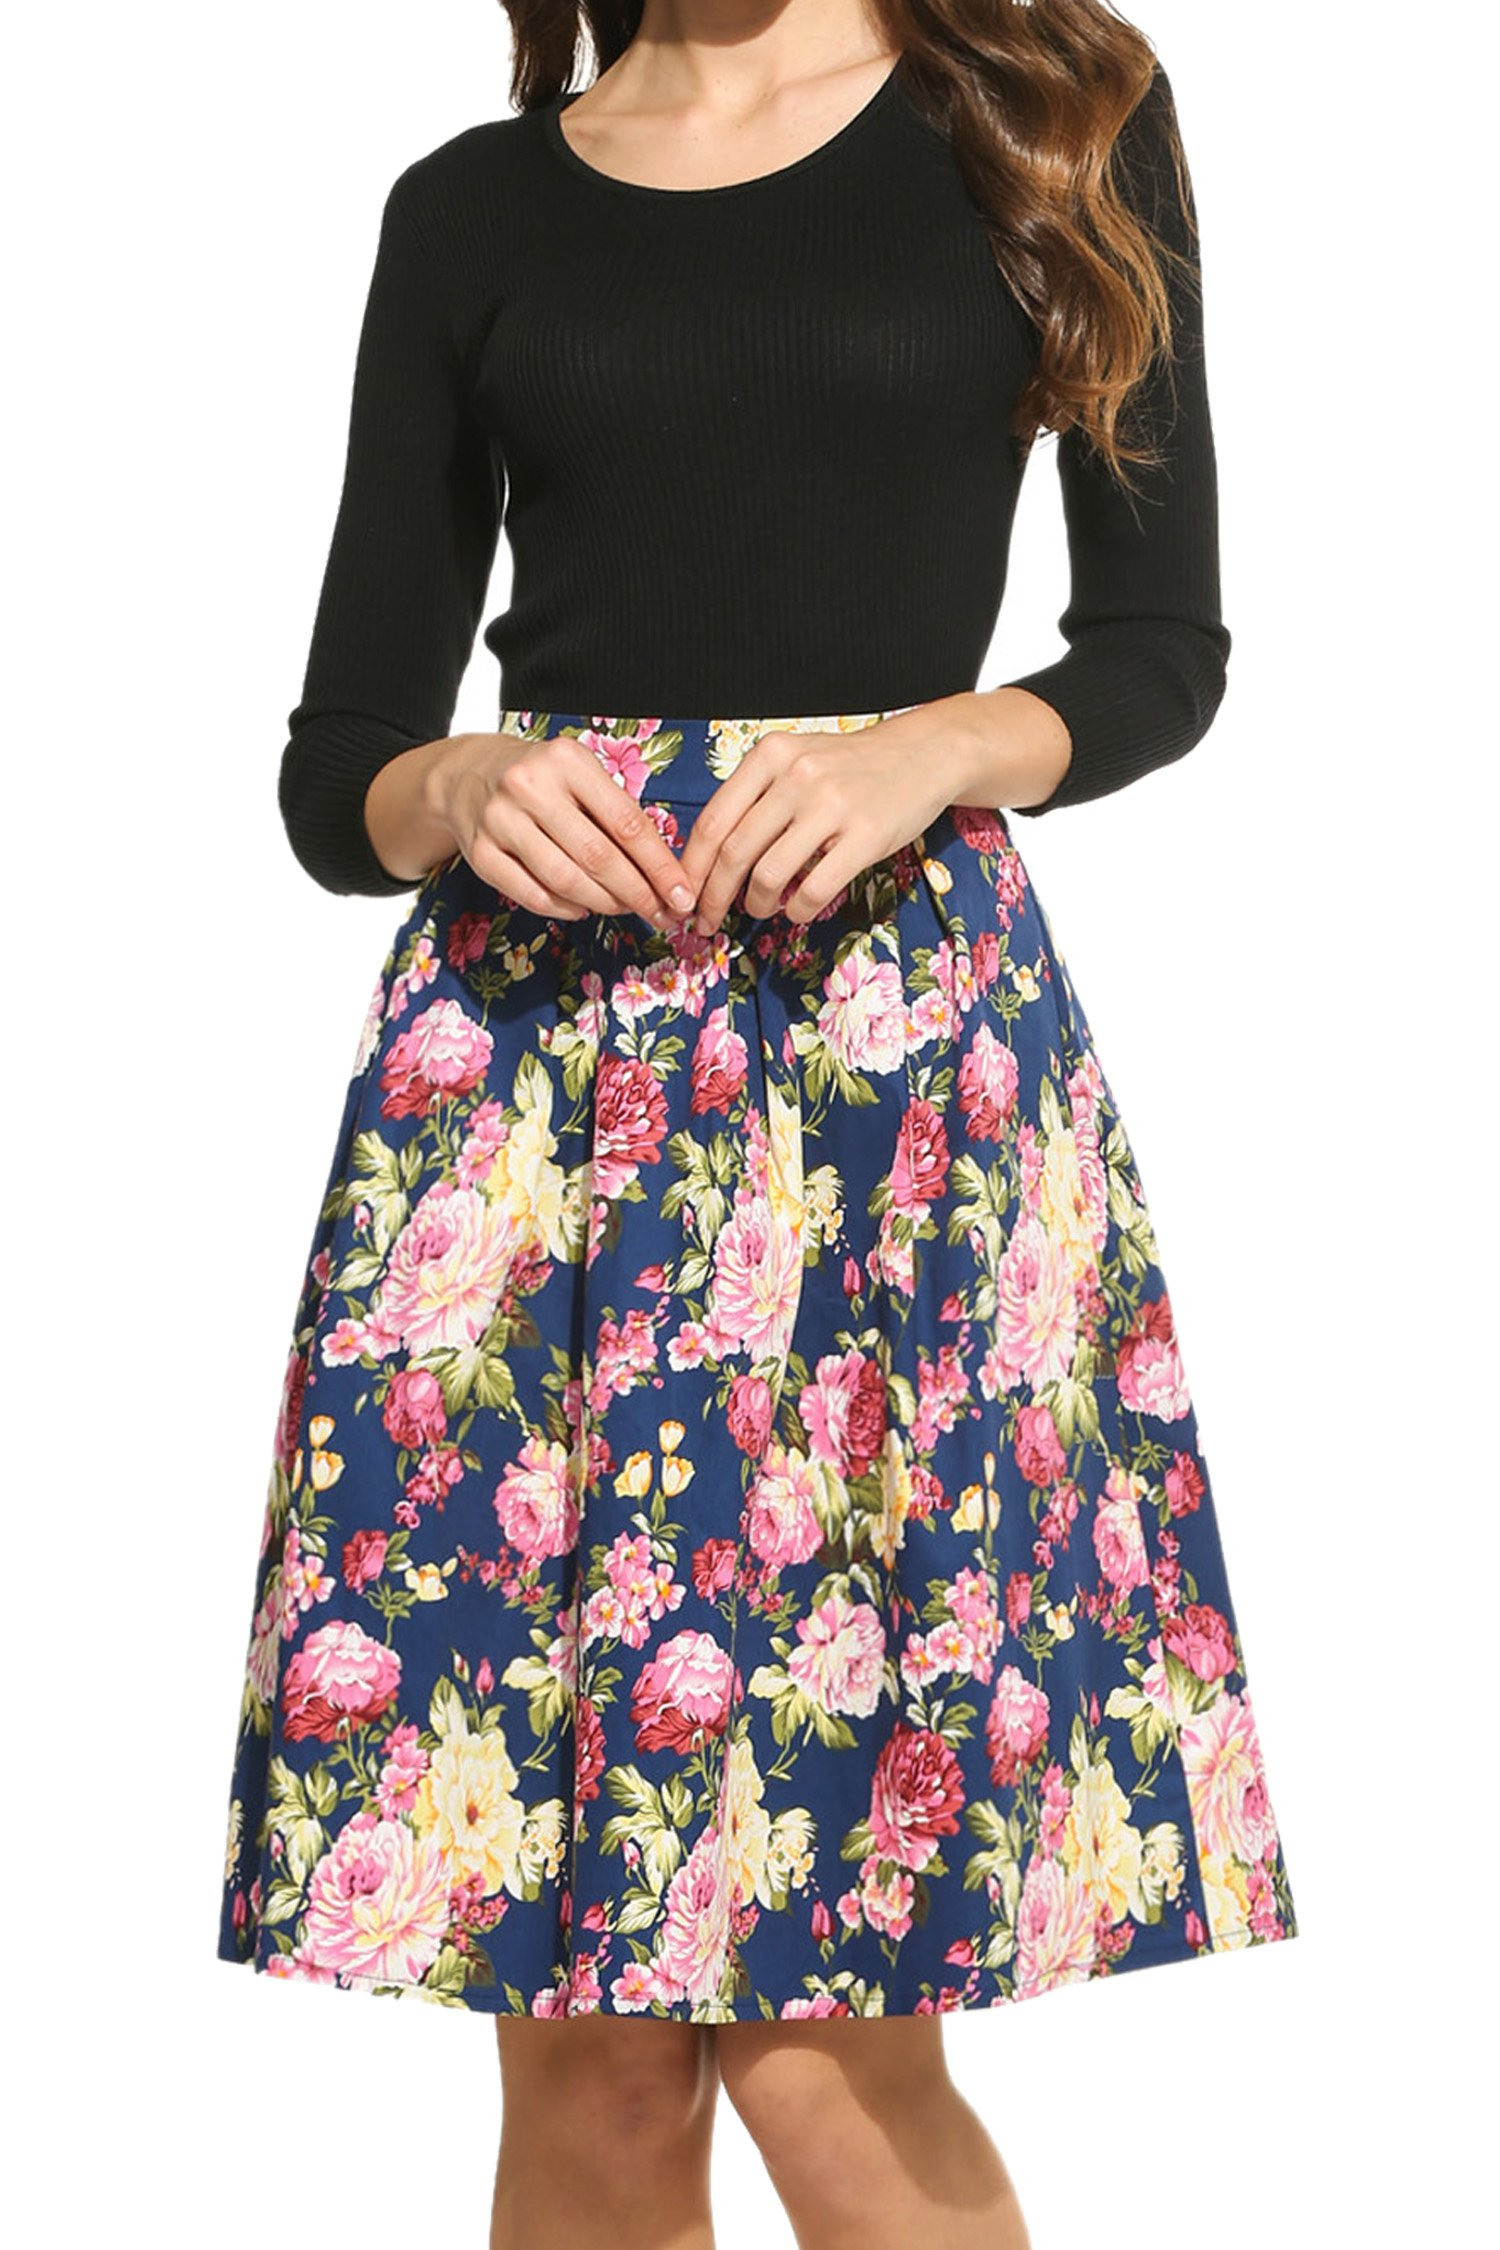 Meaneor Women's High Waisted A line Street Skirt Skater Pleated Full Midi Skirt by Meaneor (Image #4)